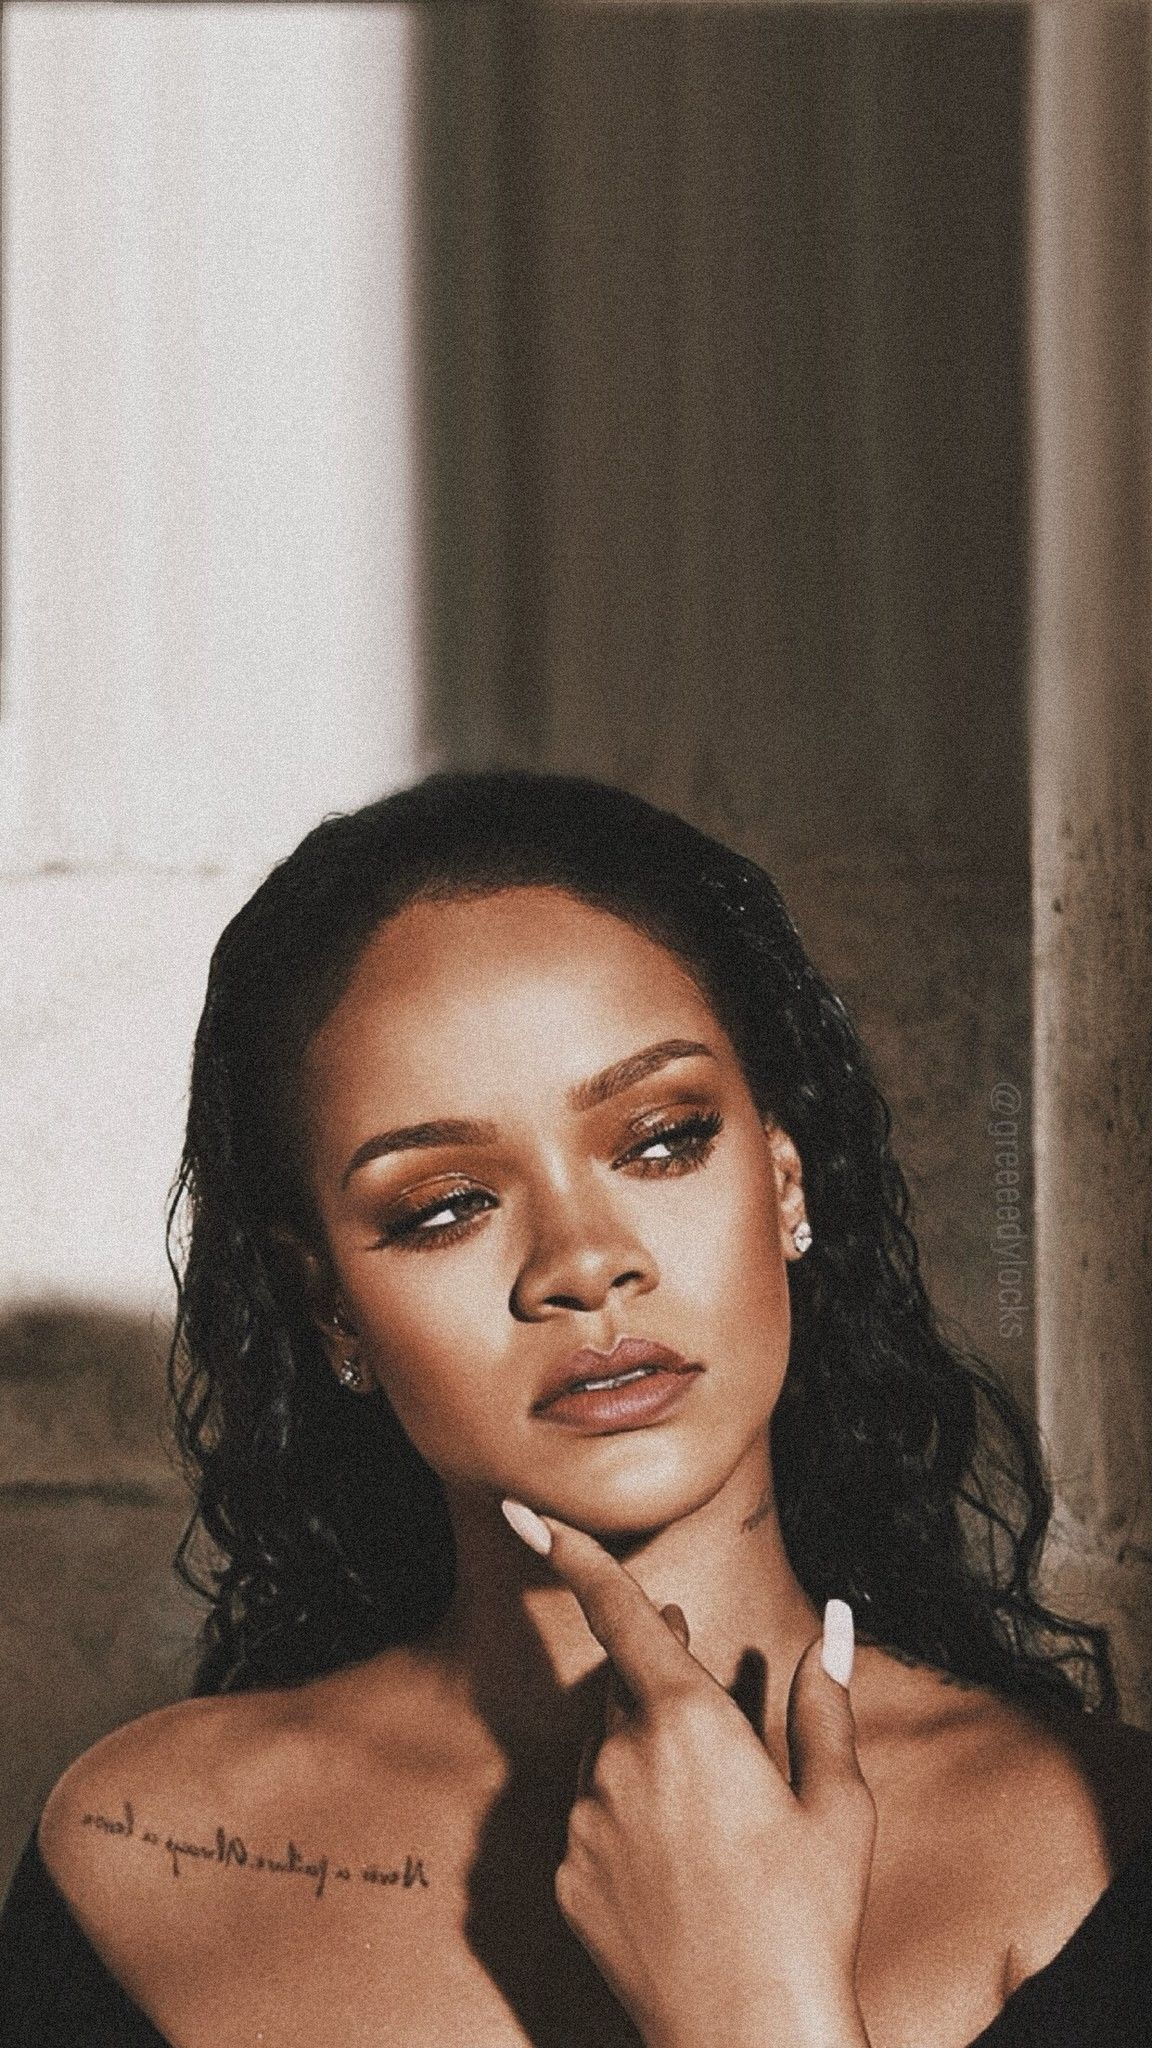 Most Beautiful Woman On The Planet Rihanna Beauty Icon In 2020 Rihanna Riri Rihanna Most Beautiful Women